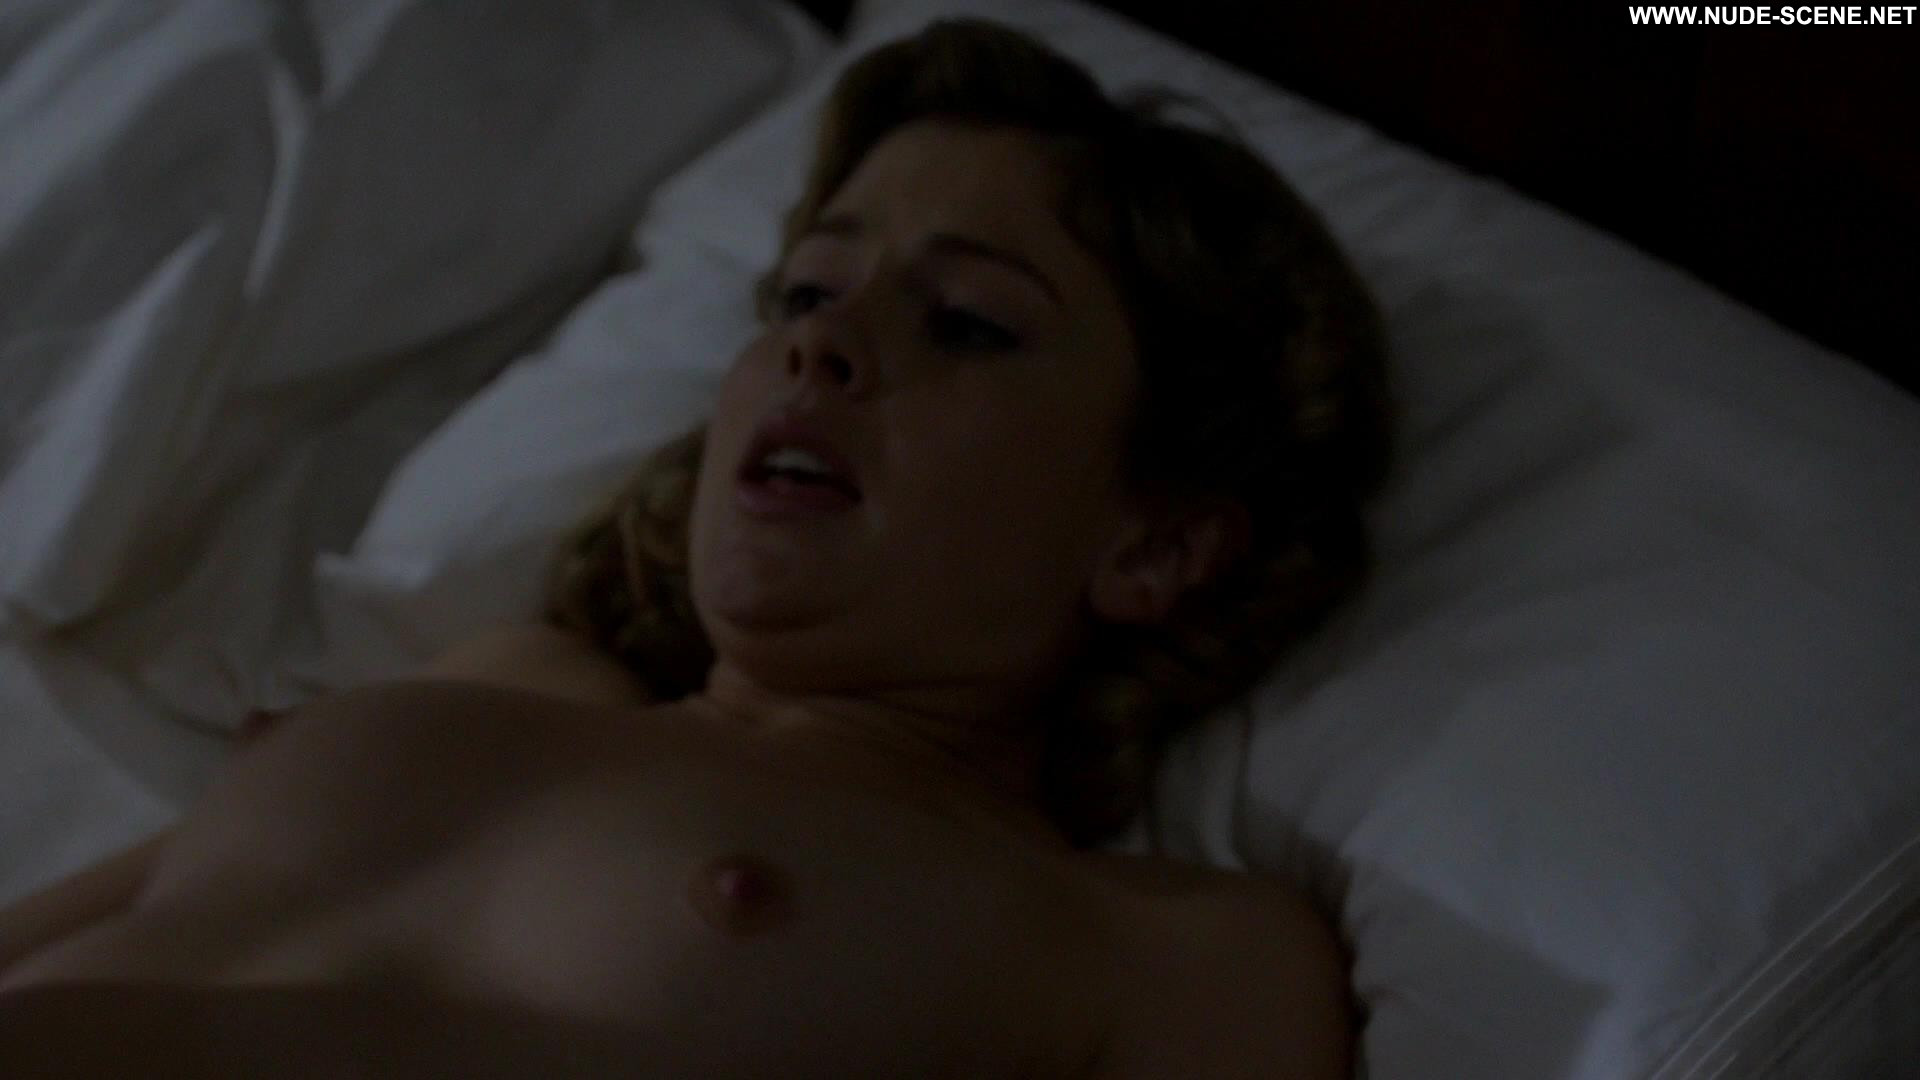 image Rose mciver nude sex scene in blinder movie